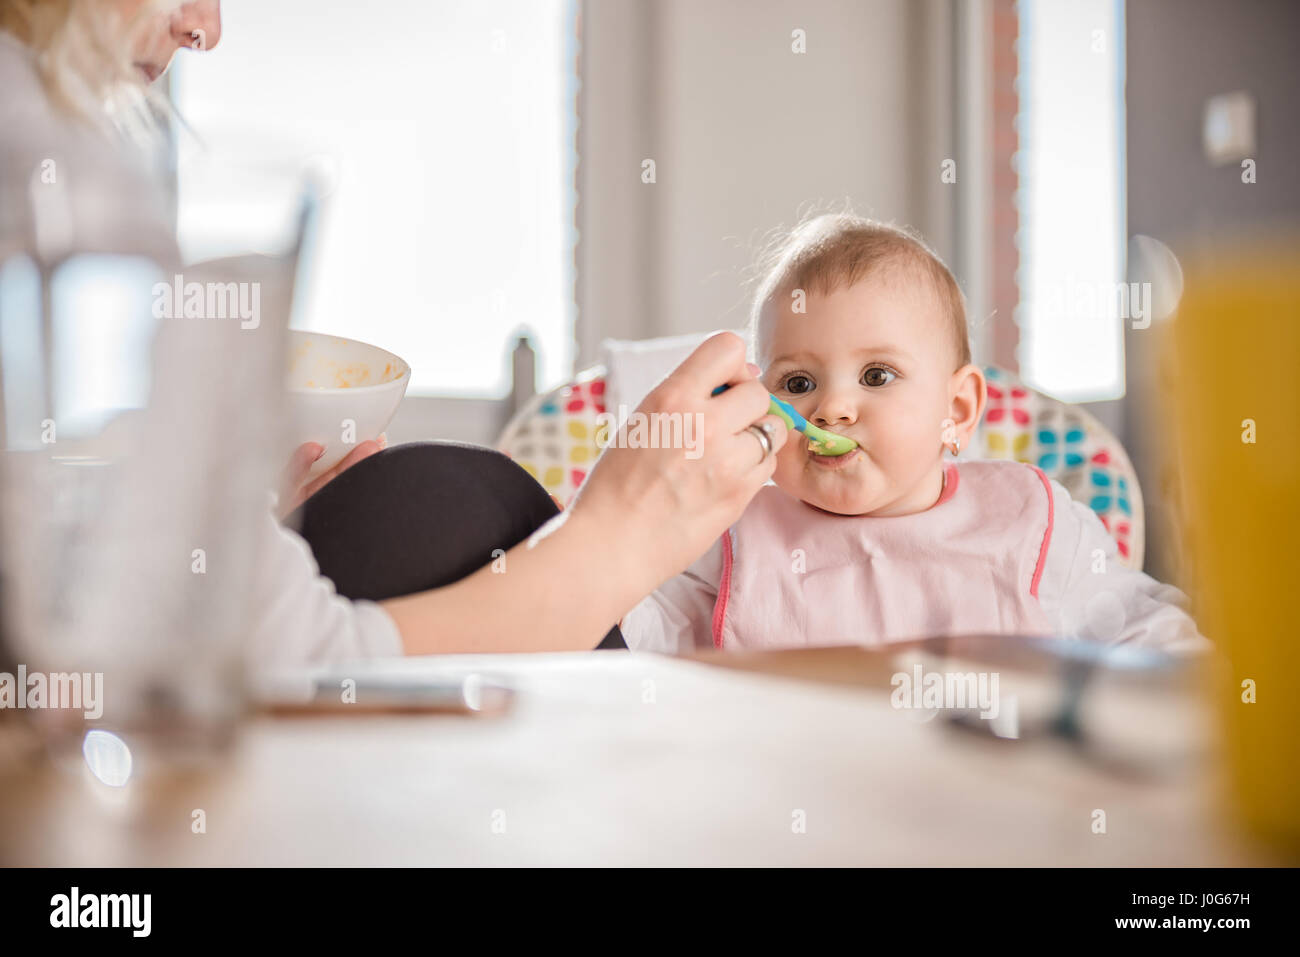 Mother feeding baby at home - Stock Image